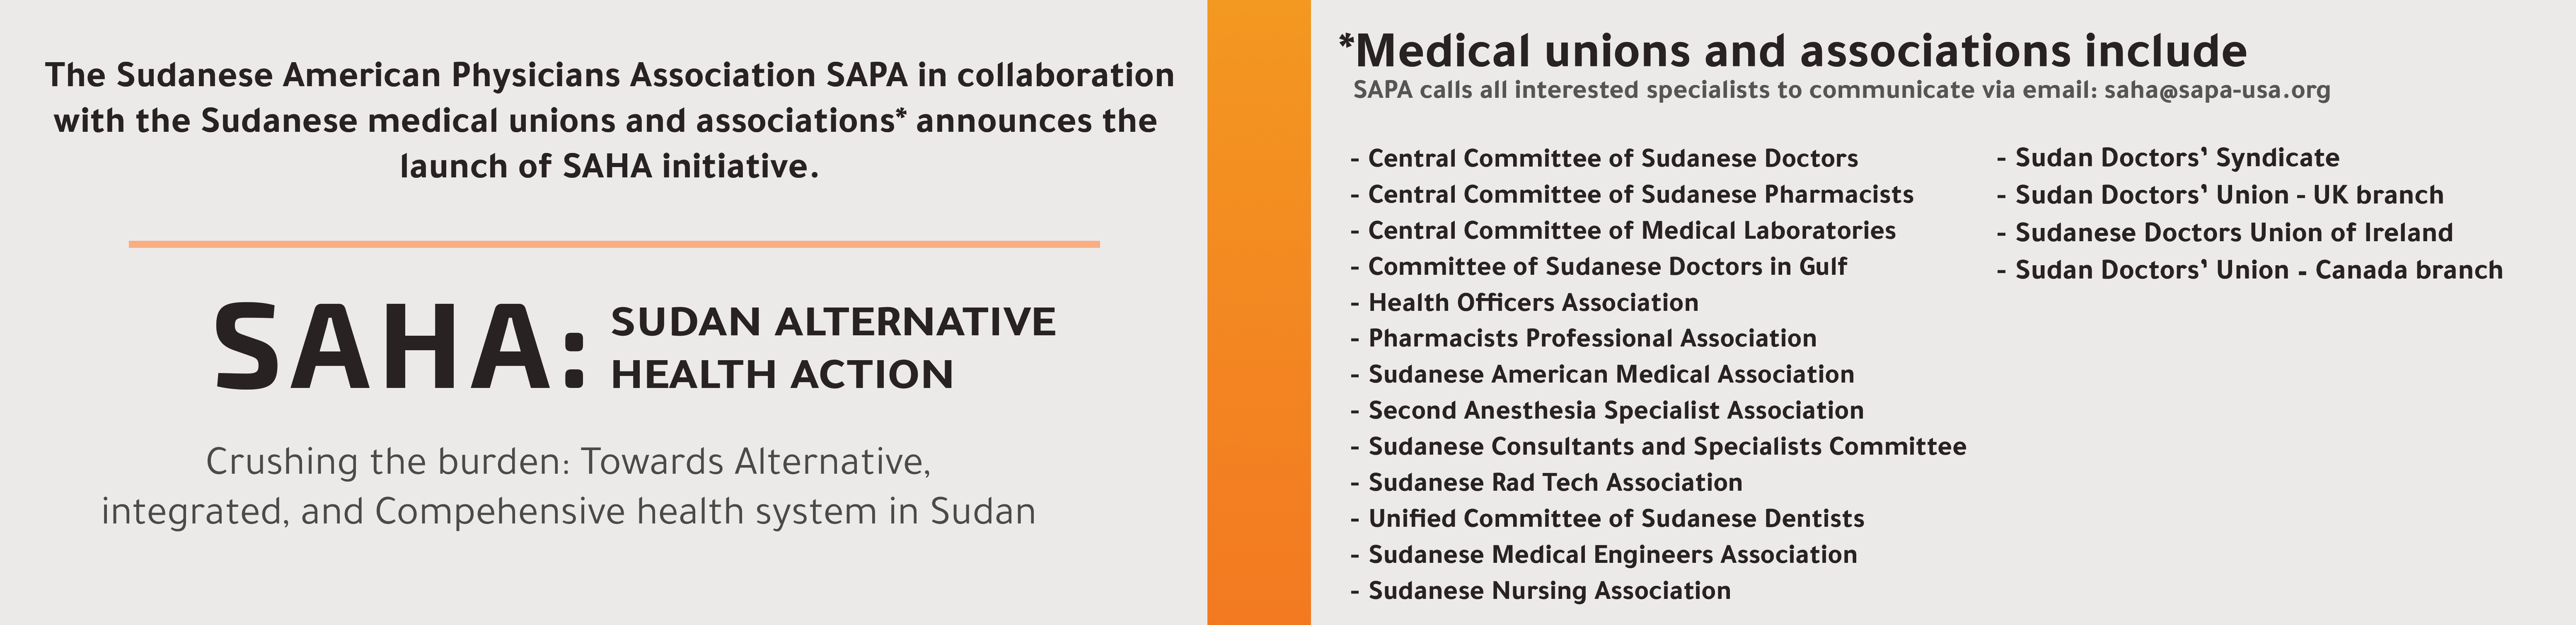 Sudan Alternative Health Action